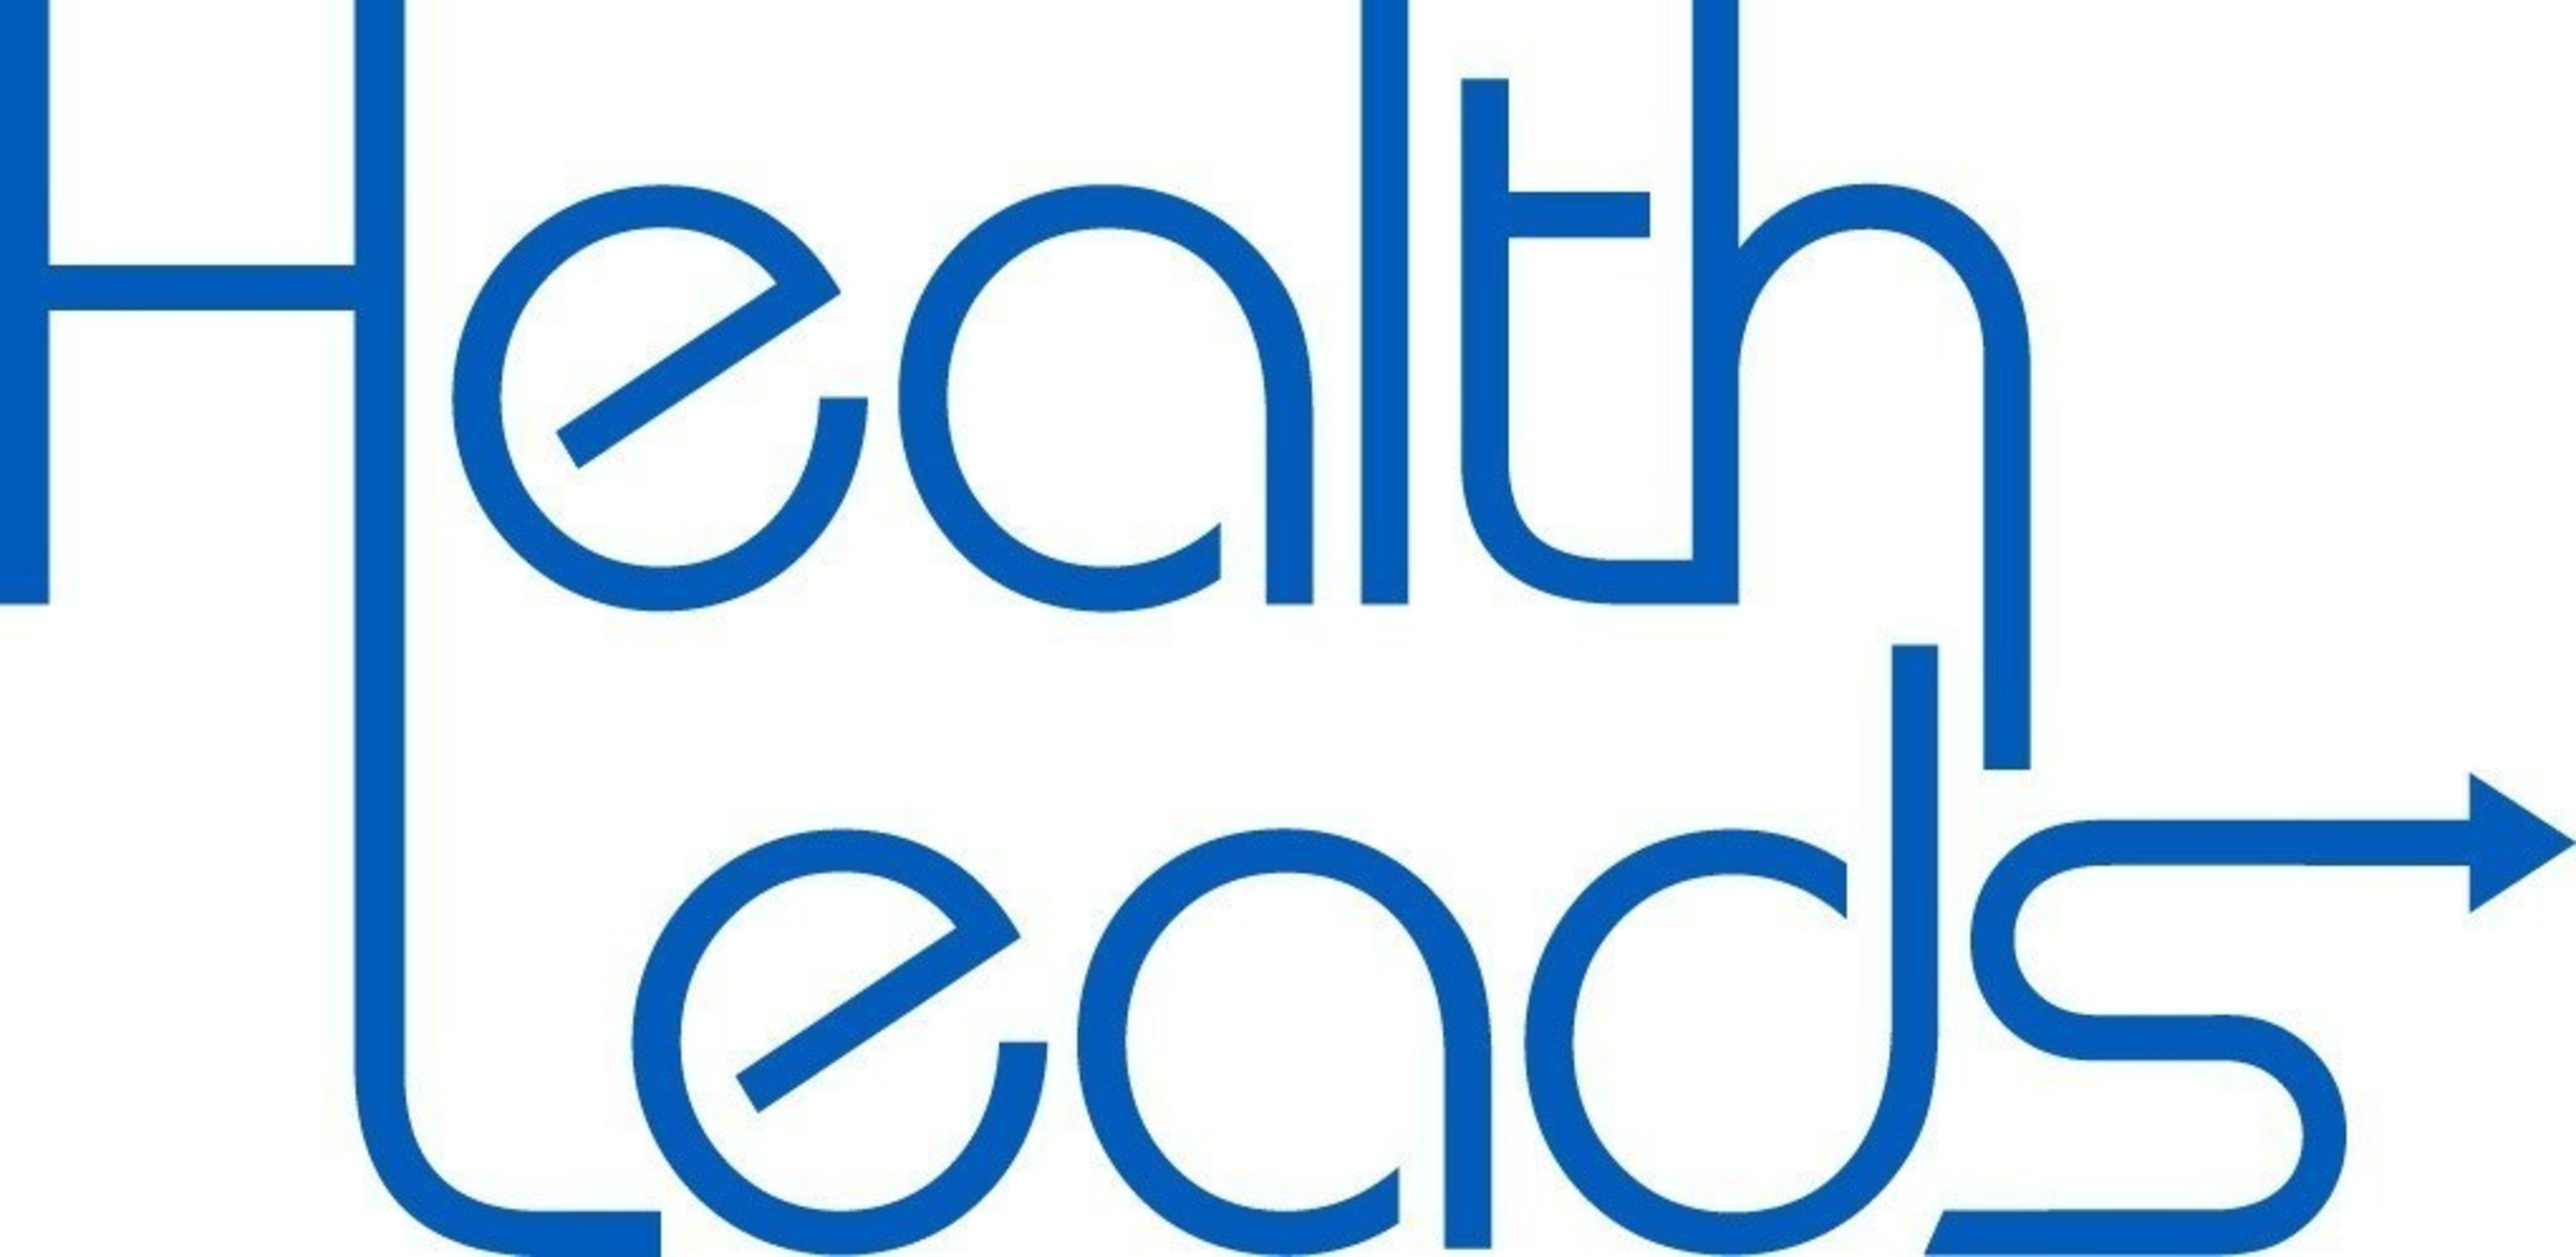 Health Leads is a social enterprise that envisions a healthcare system that addresses all patients' basic resource needs as a standard part of quality care.